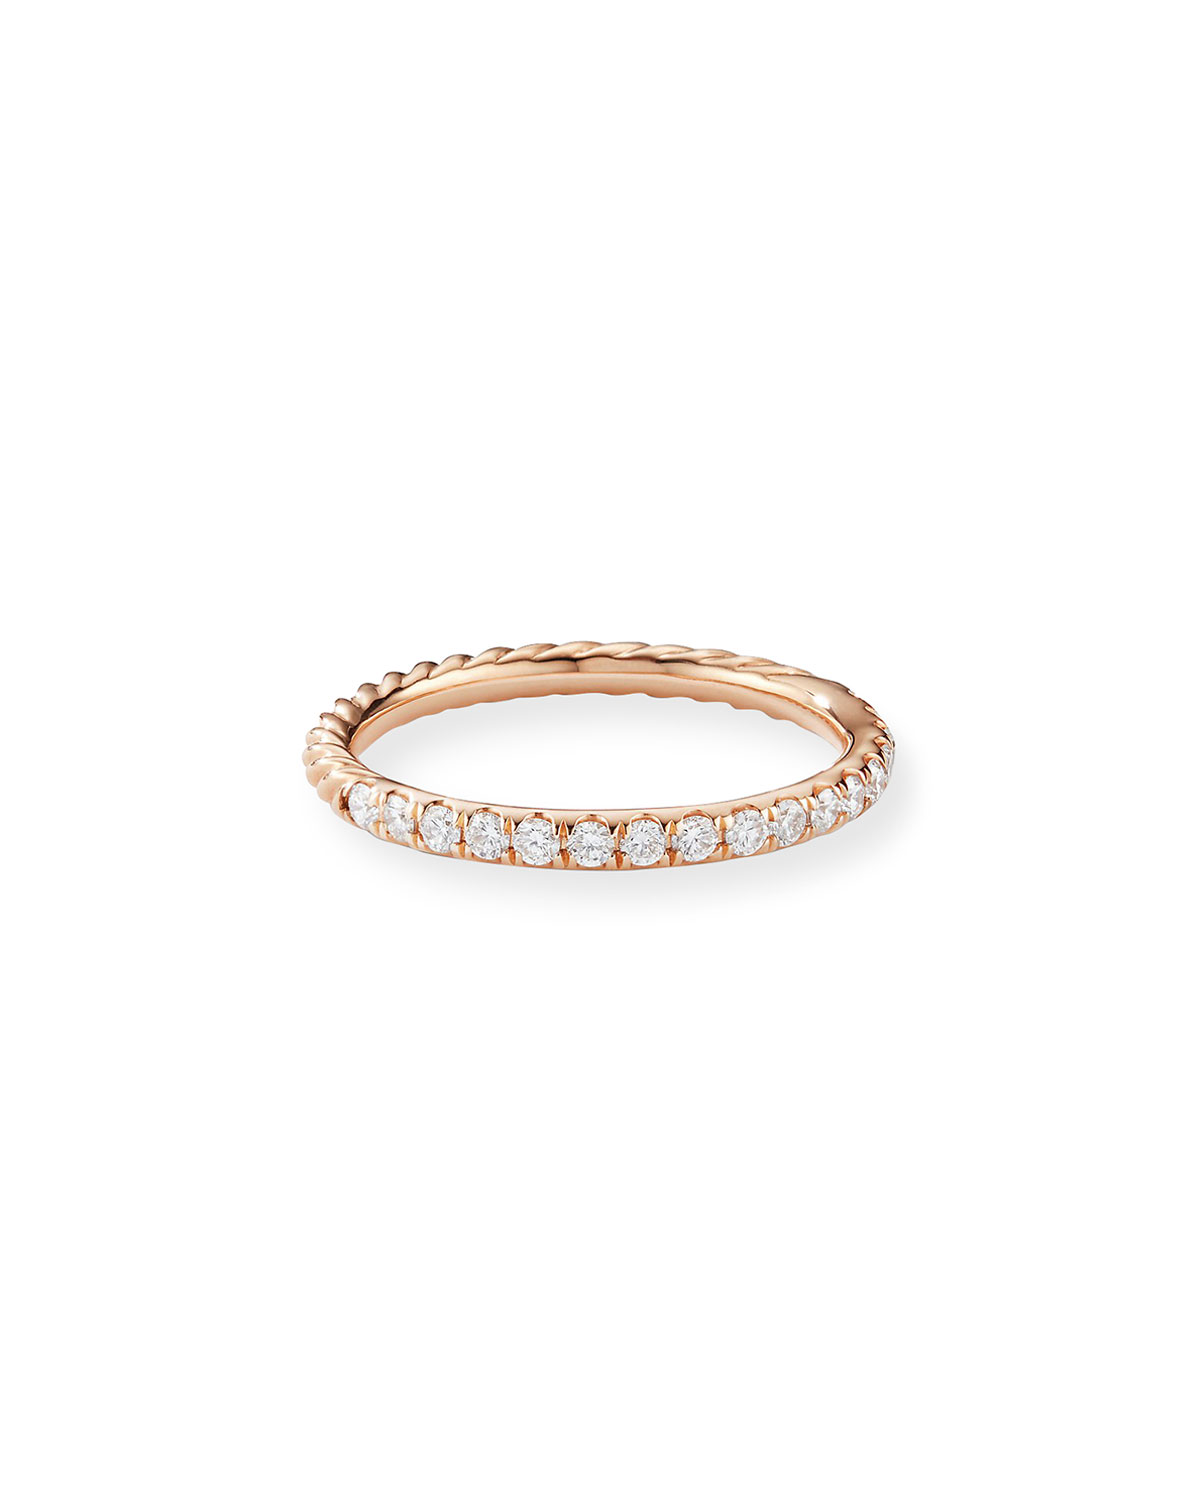 David Yurman Cable Collectibles Pave Diamond Band Ring in 18K Rose Gold, Size 9